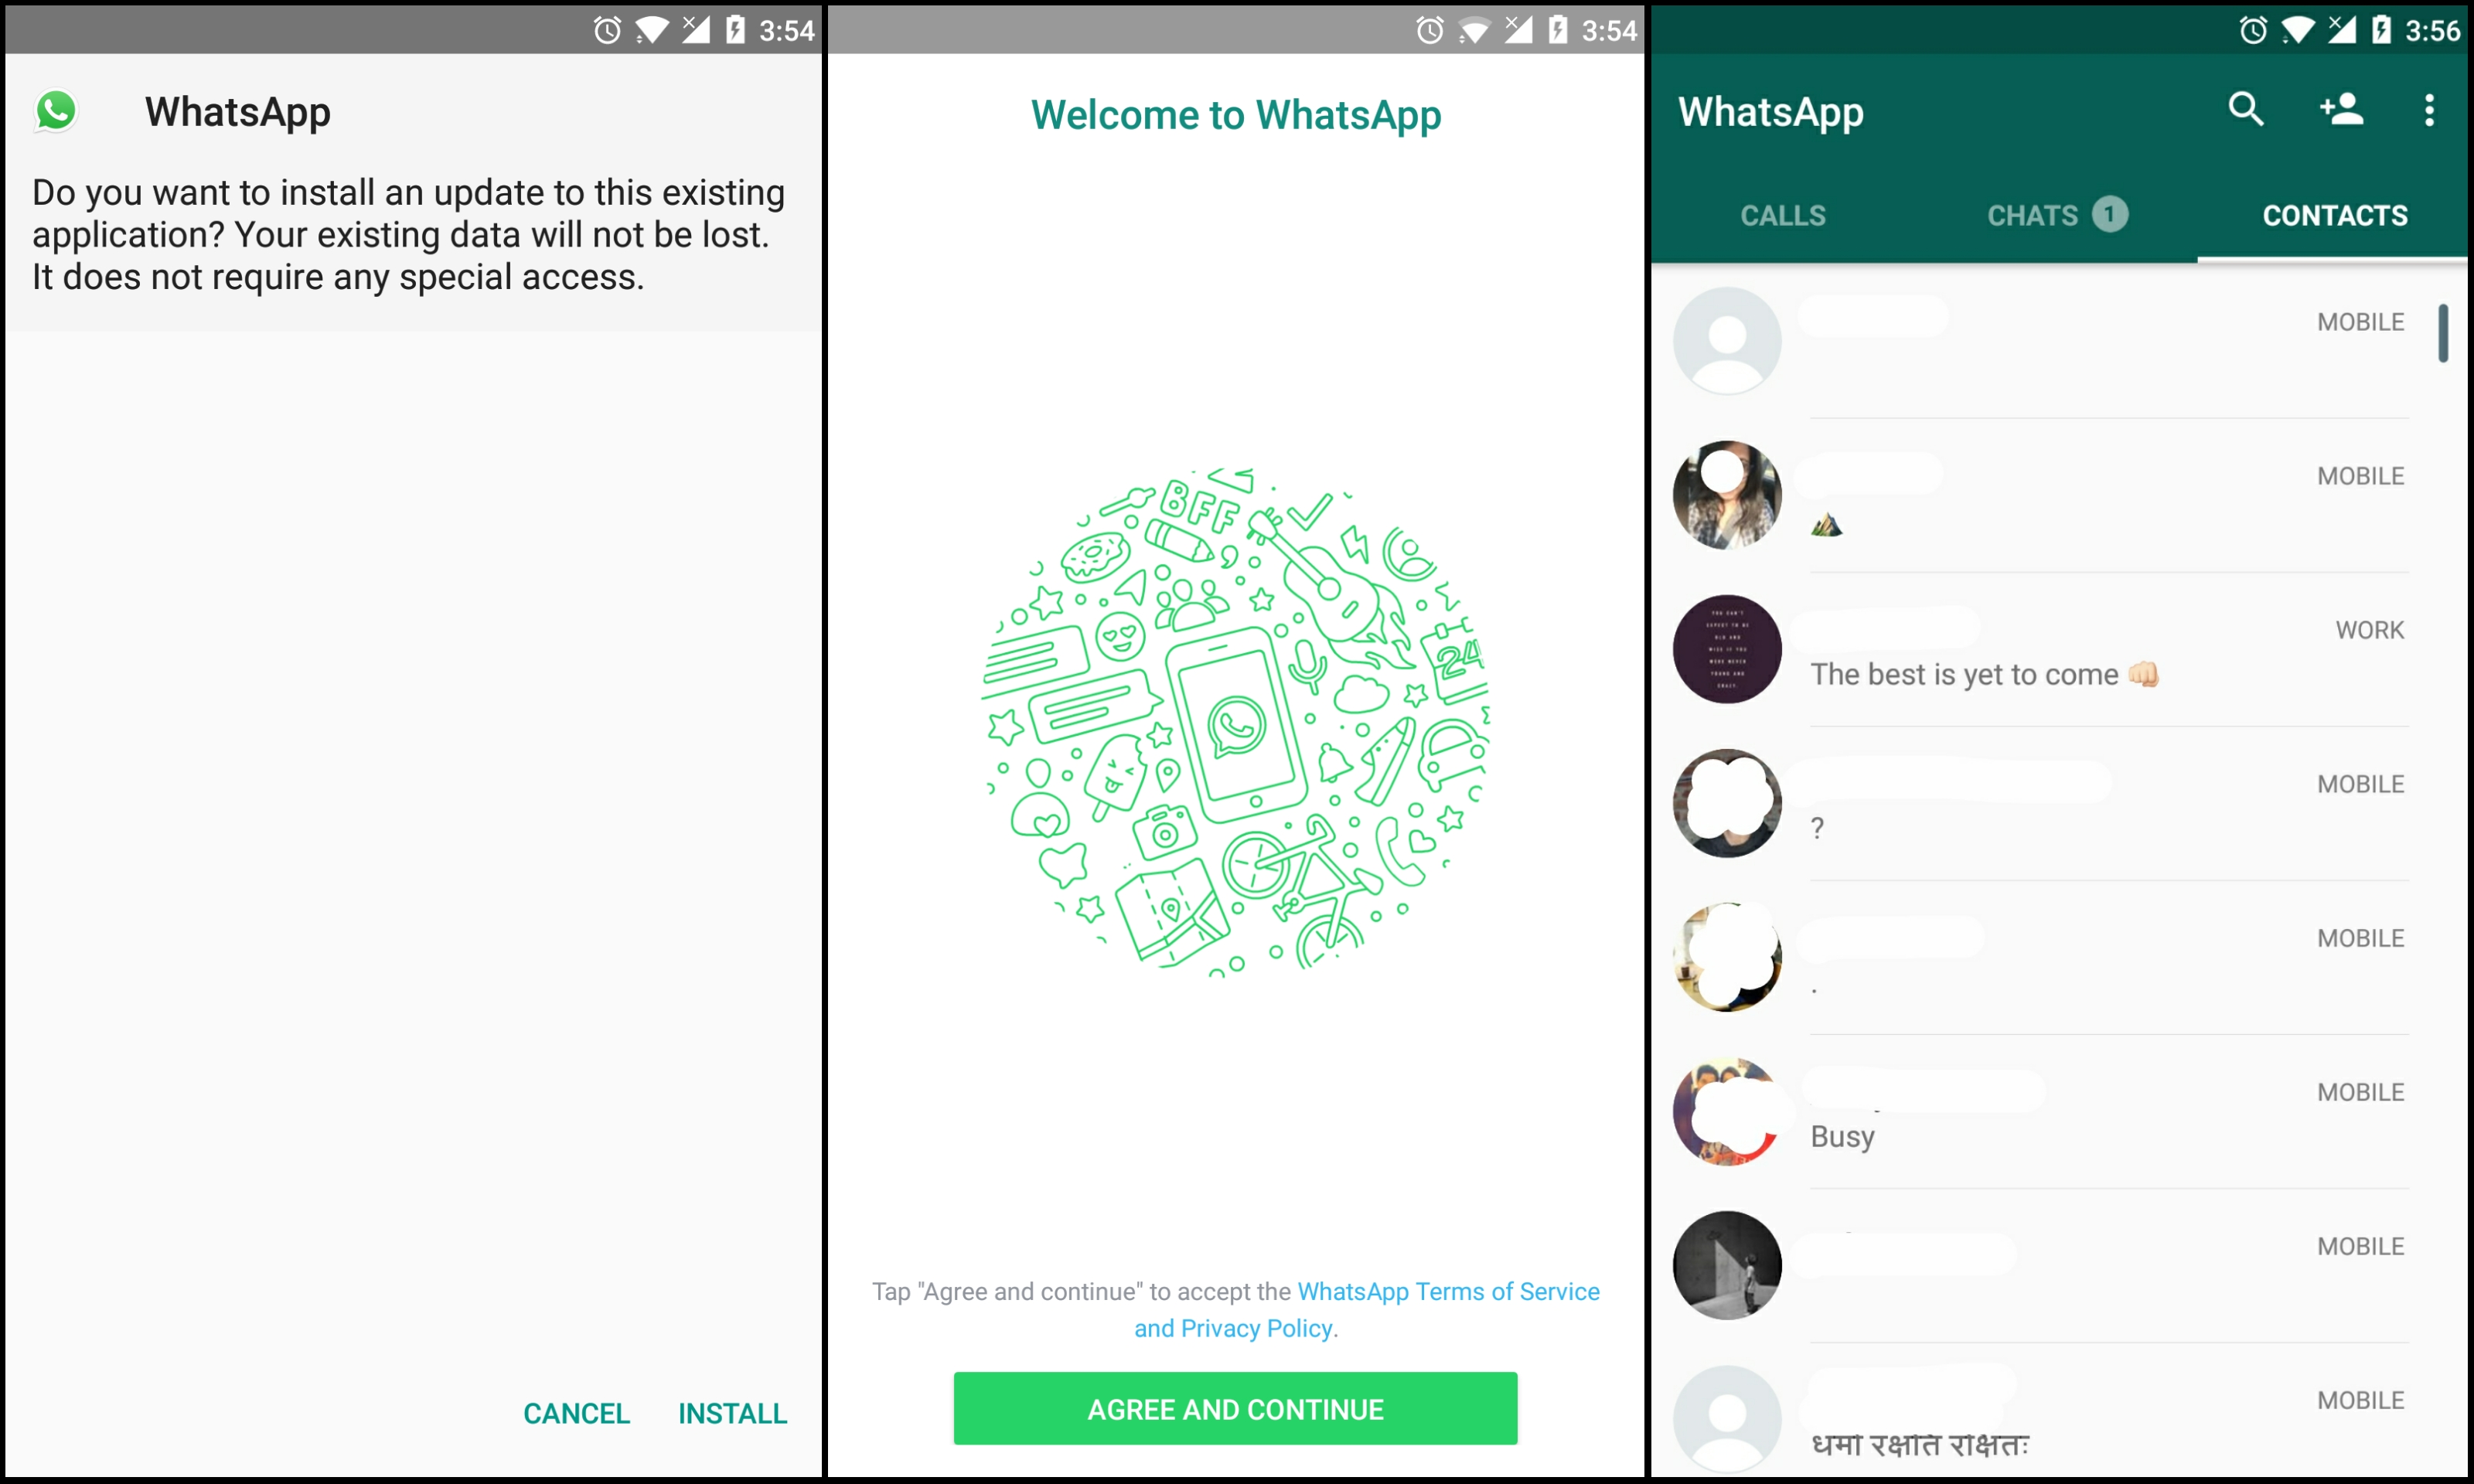 How to bring back the old WhatsApp Messenger: Step-by-Step Guide